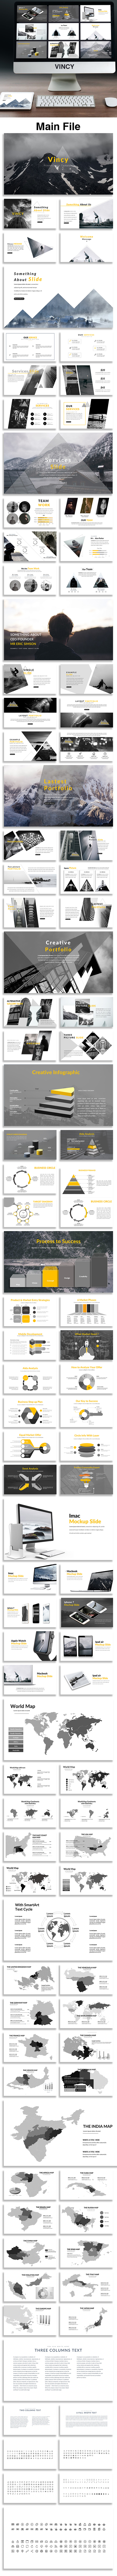 Vincy - Creative Keynote Template - Creative Keynote Templates